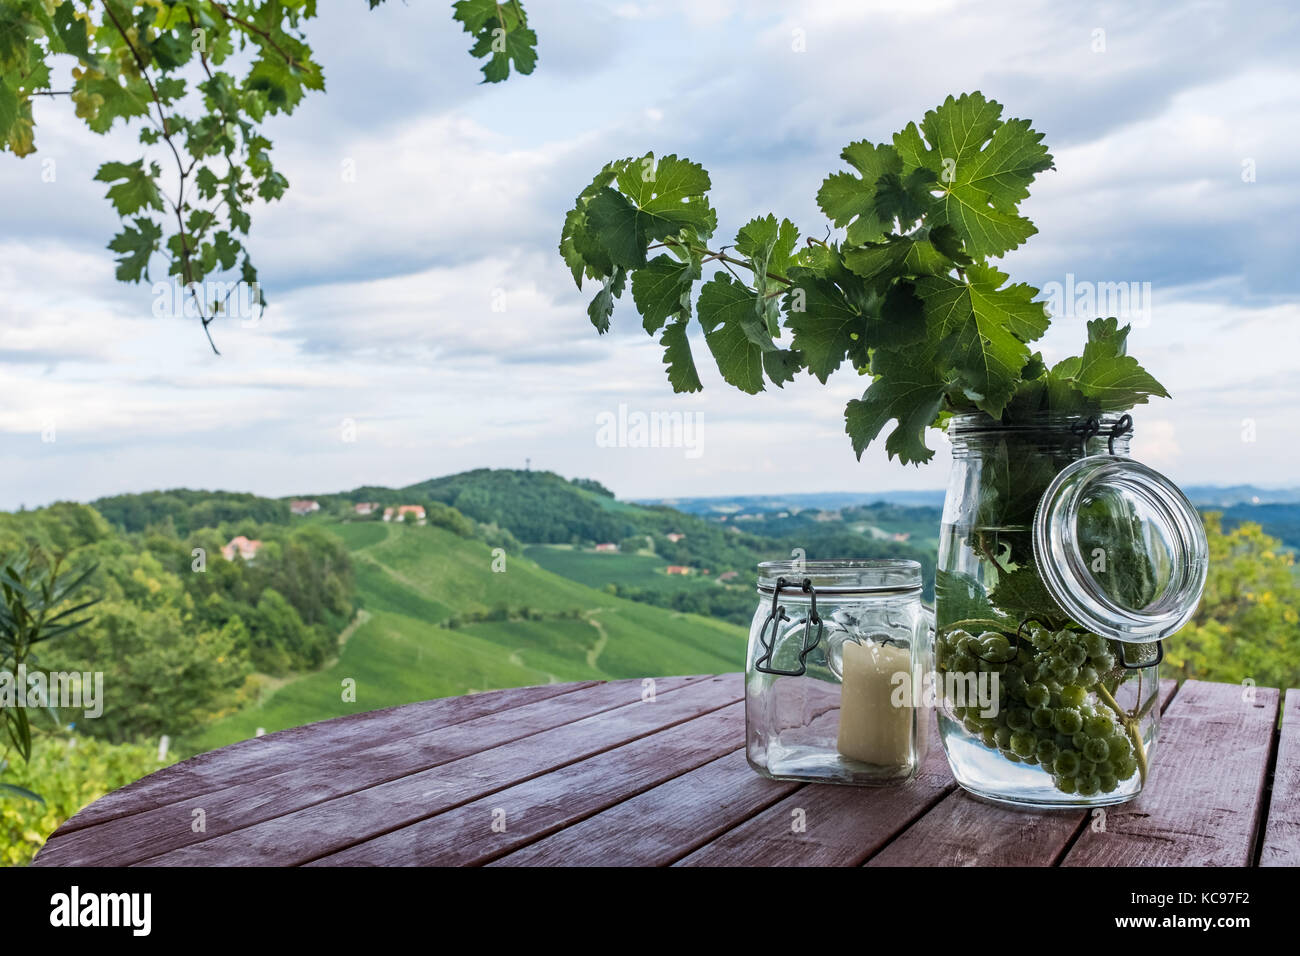 Jars with grapes and candle on wooden barrel near vineyard on south Styrian wine route in Austria - Stock Image